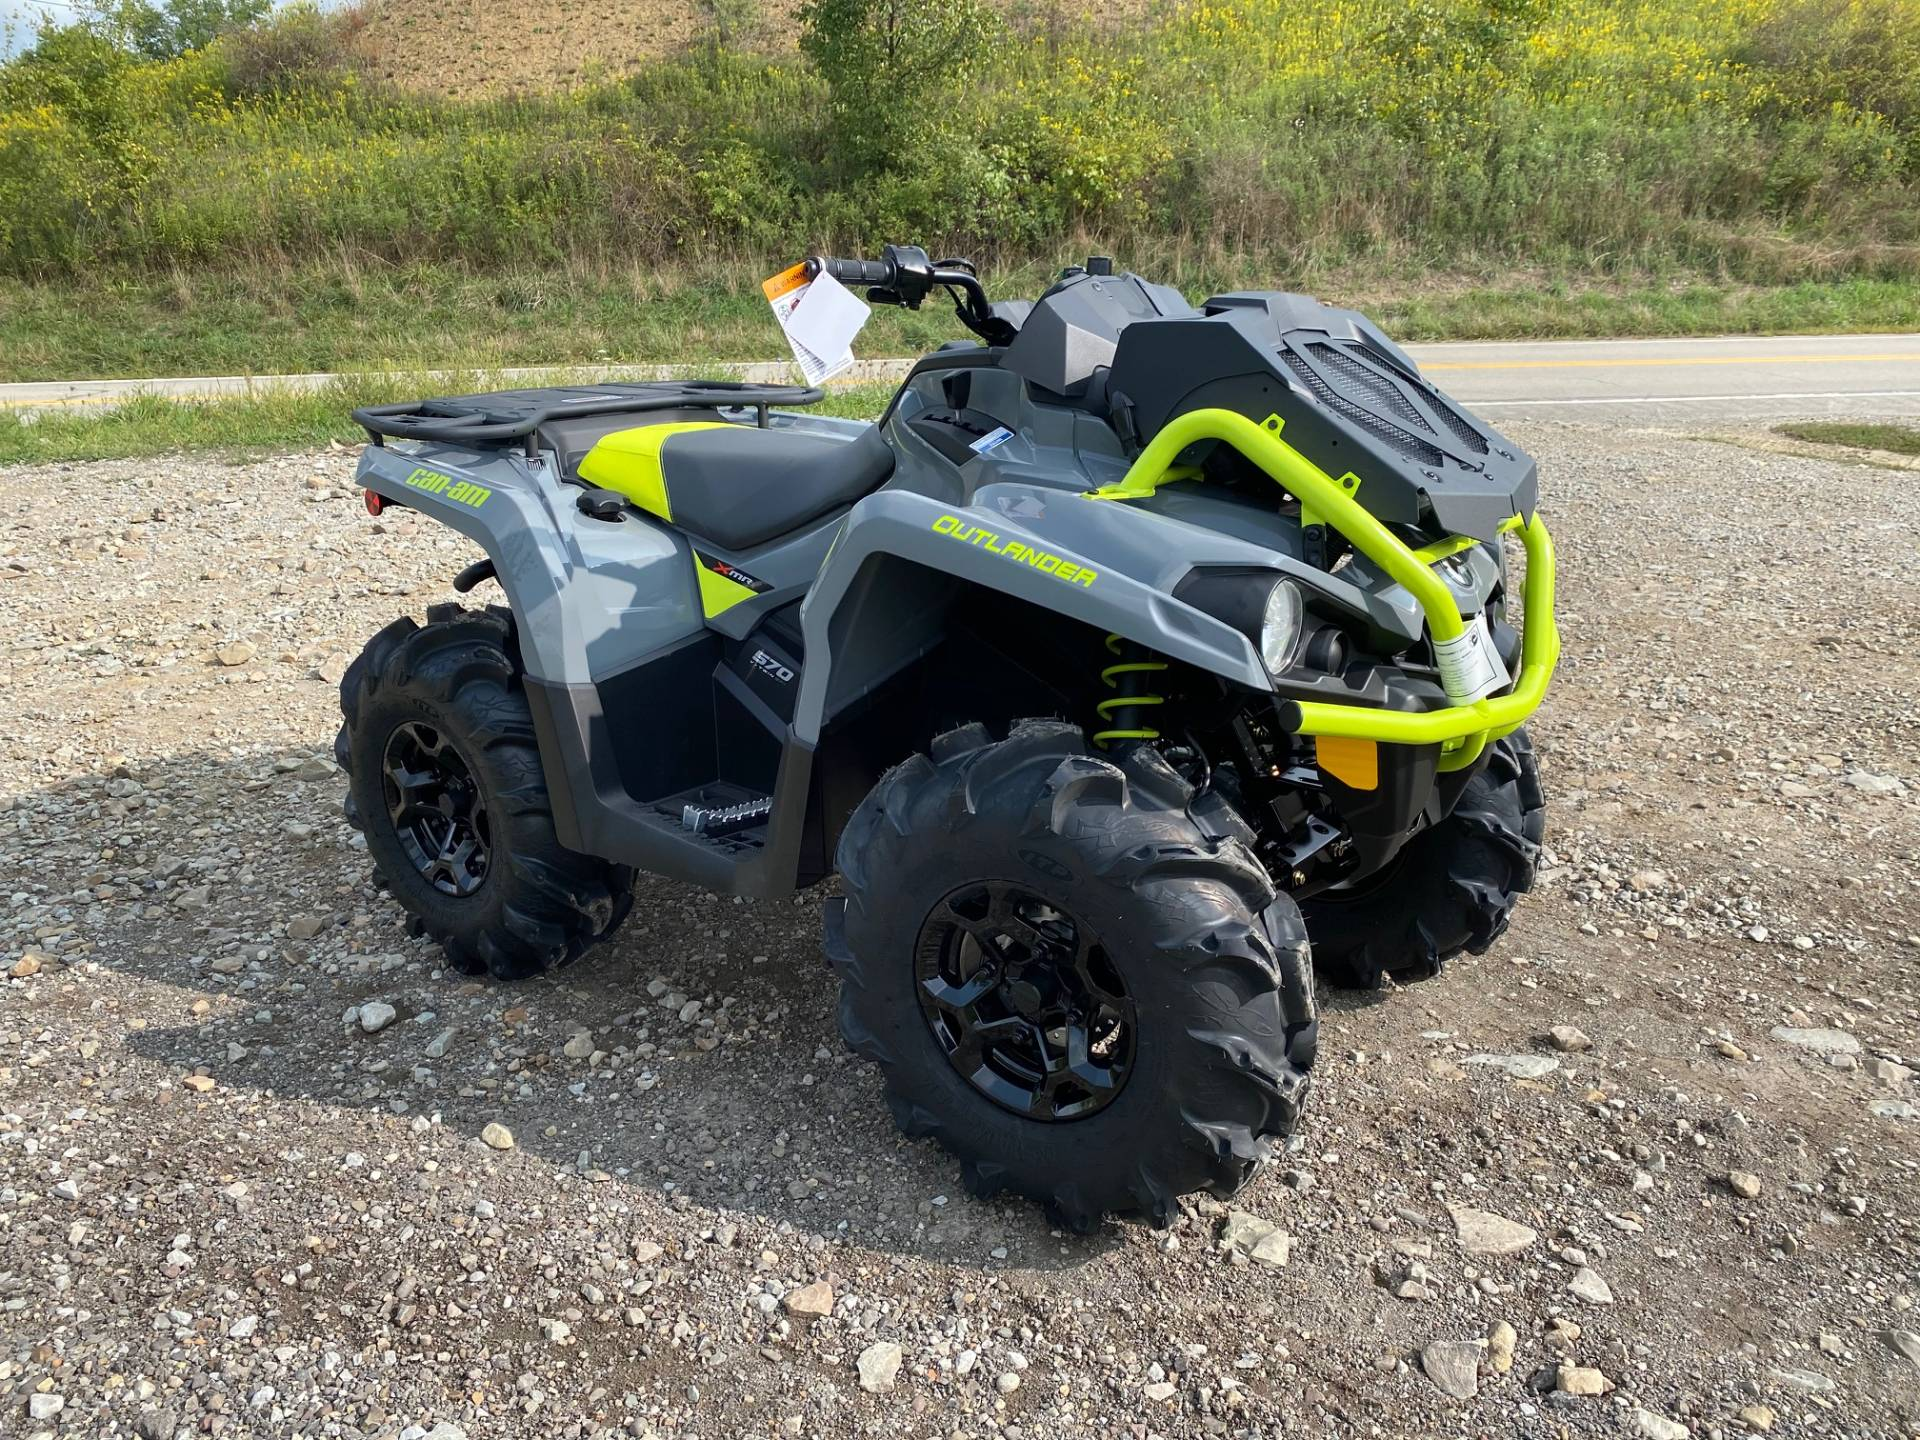 2021 Can-Am Outlander X MR 570 in Claysville, Pennsylvania - Photo 3